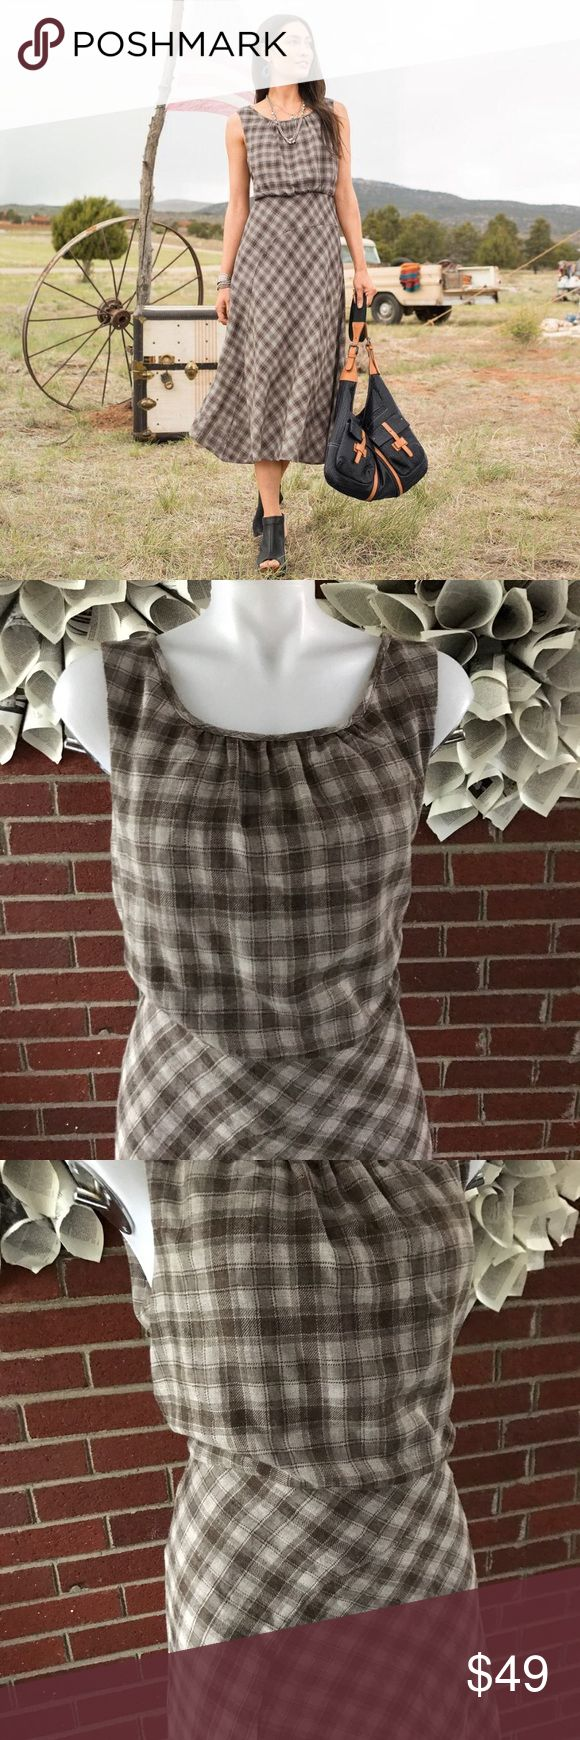 SUNDANCE North Fork Plaid Midi Dress Please see photos for all measure! Sorry I do not model/trade!! This item comes from a smoke free, pet friendly home!! No rips, holes or stains to note!! I ship Monday-Friday to ensure quick delivery (orders placed after 7am will not be processed until the following day). Orders placed Saturday/Sunday will not be processed until Monday morning :)! Thanks for shopping my closet JA9 Sundance Dresses Midi